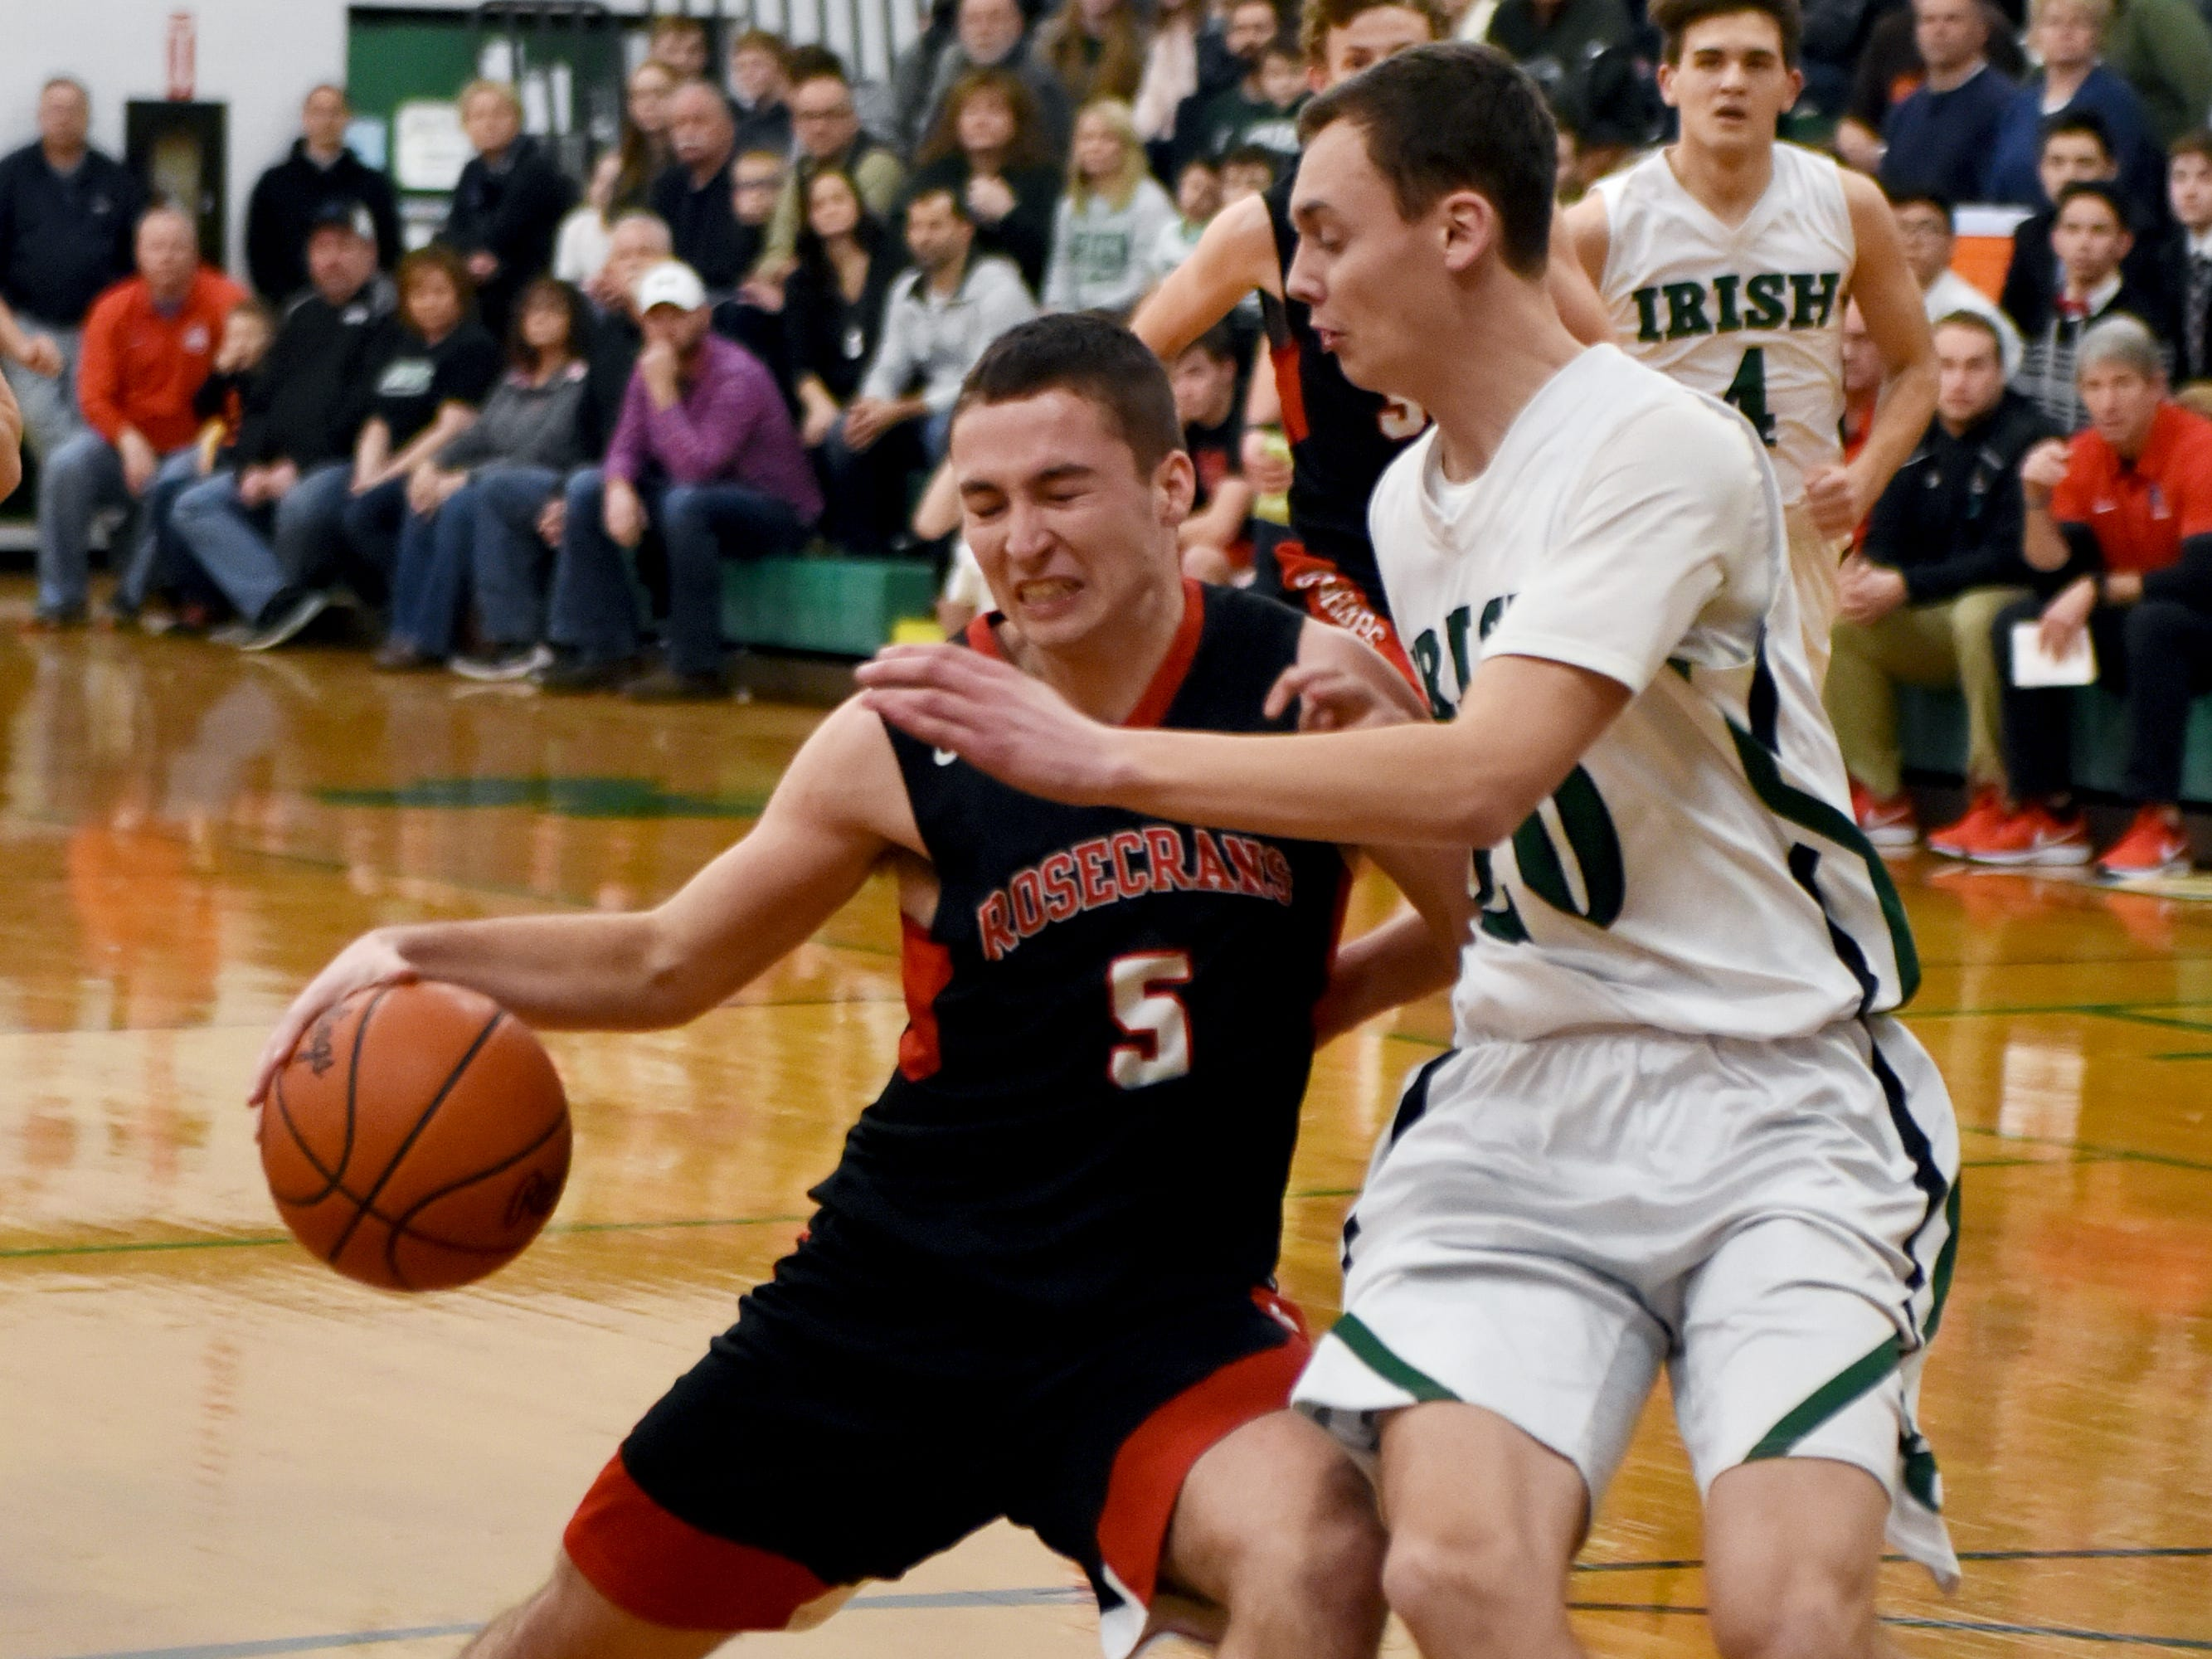 Marcus Browning, of Rosecrans, drives into the lane against Fisher Catholic's Bryson Vogel.